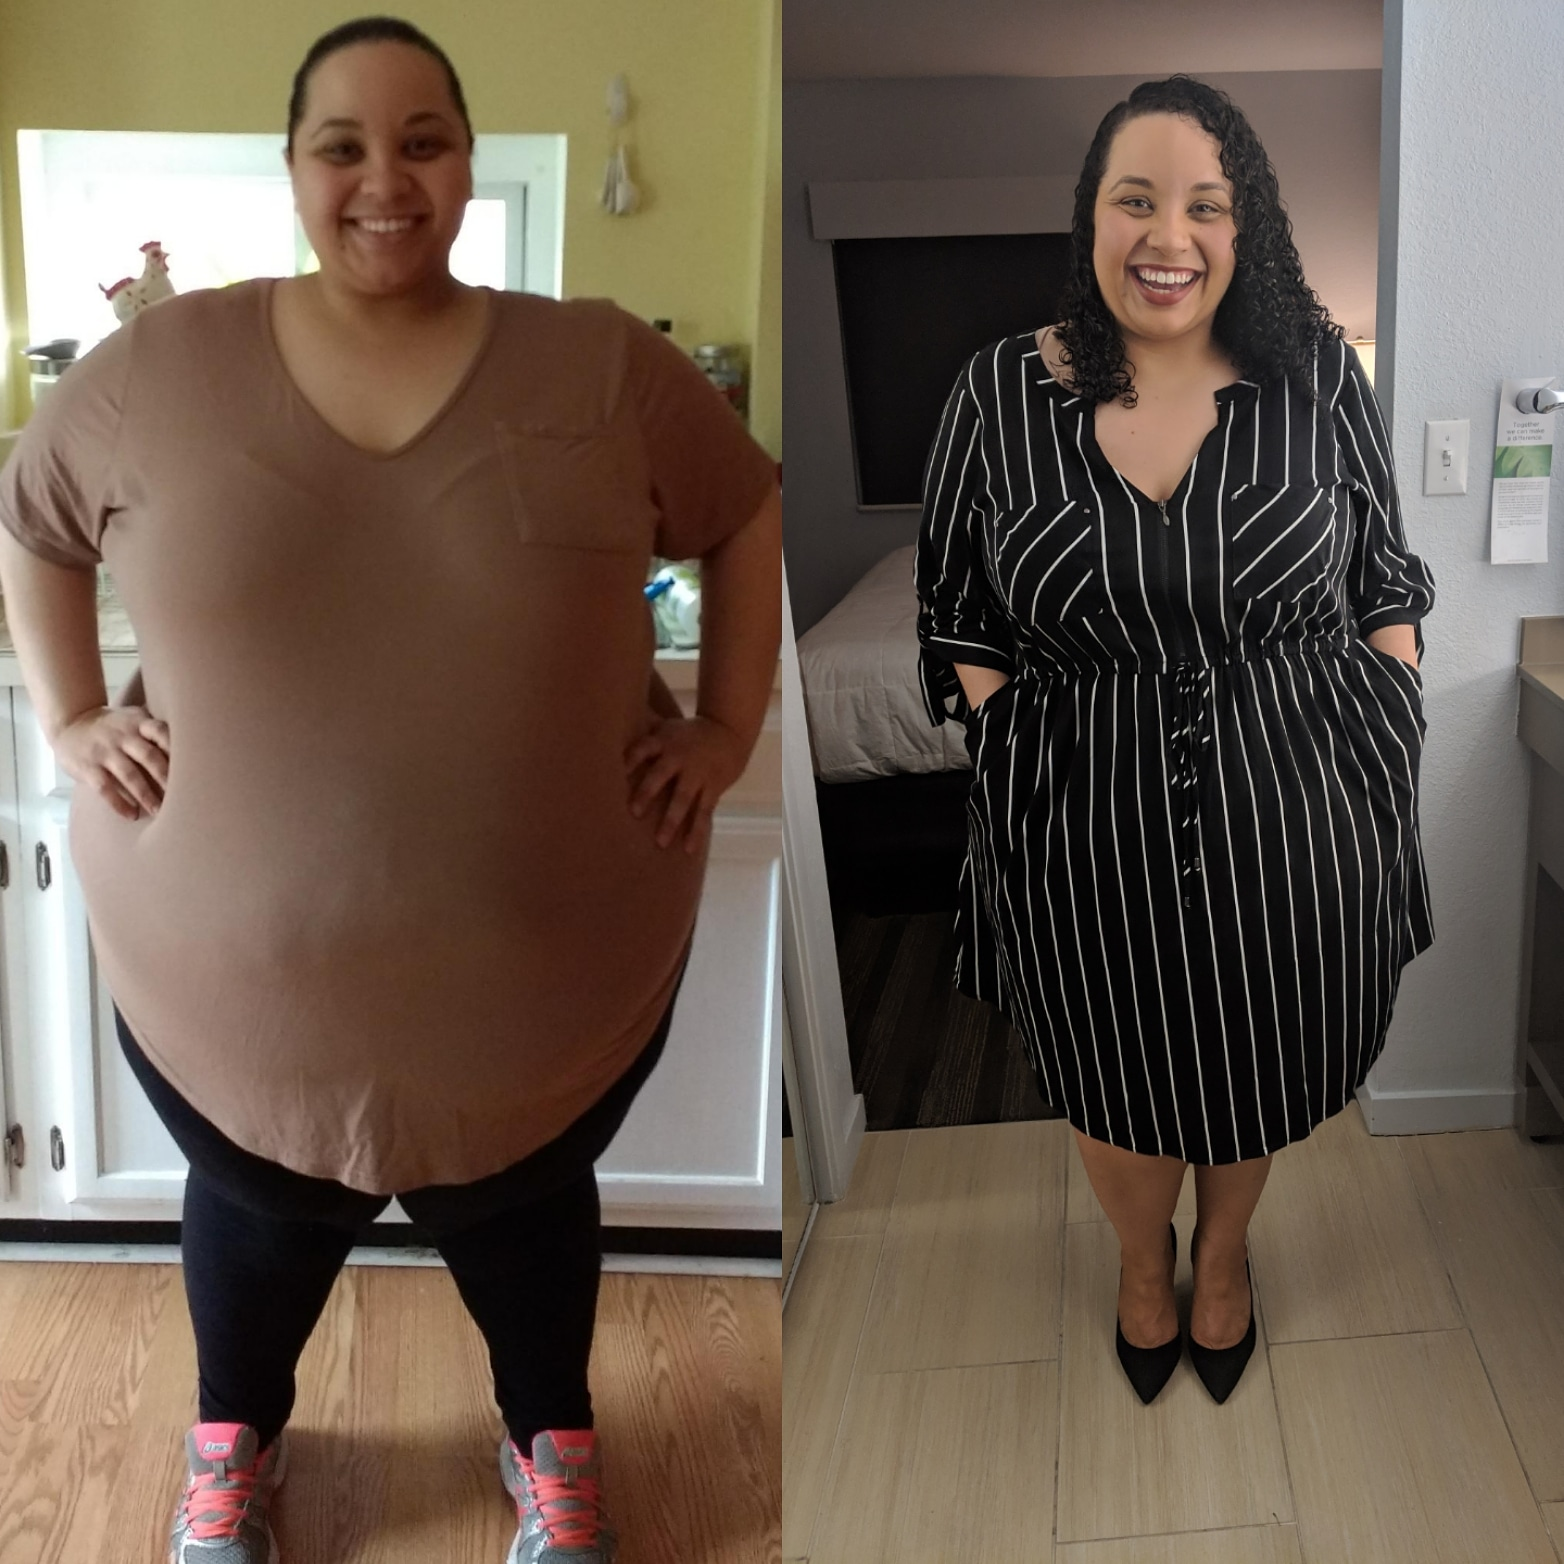 124 lbs Fat Loss Before and After 5 foot 3 Female 443 lbs to 319 lbs